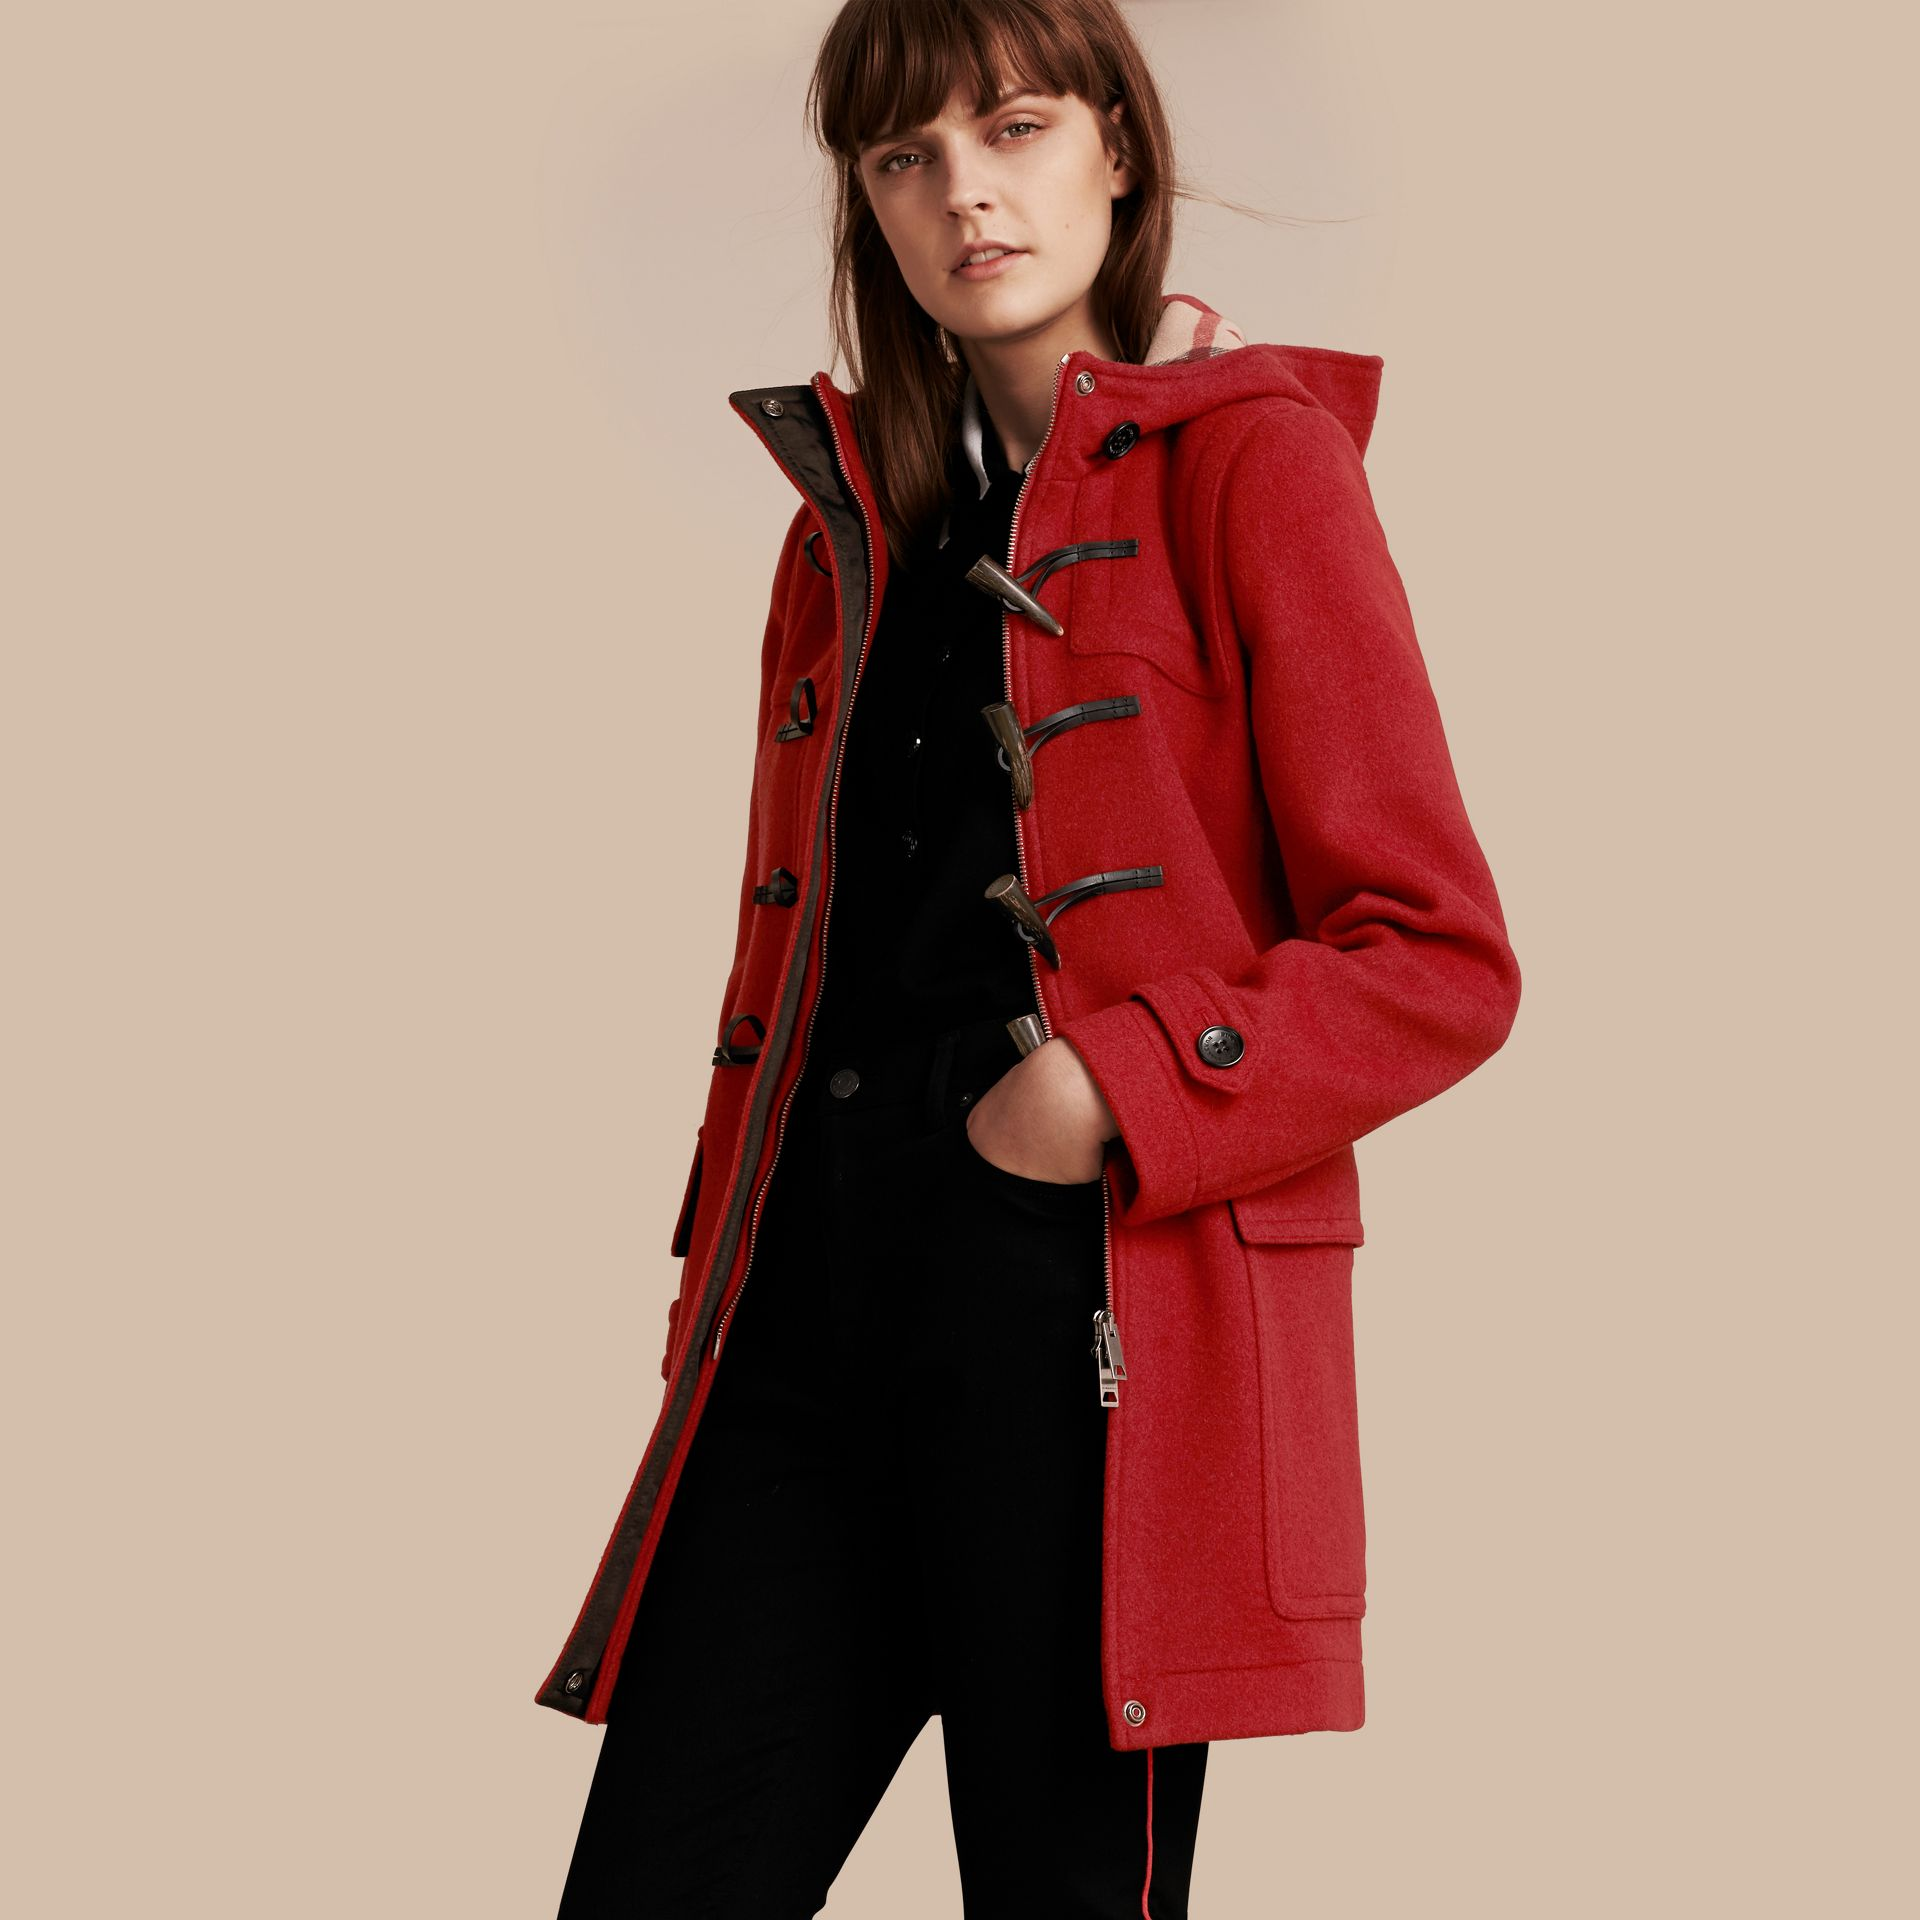 Windsor red Wool Duffle Coat with Check and Hearts Lining Windsor Red - gallery image 1